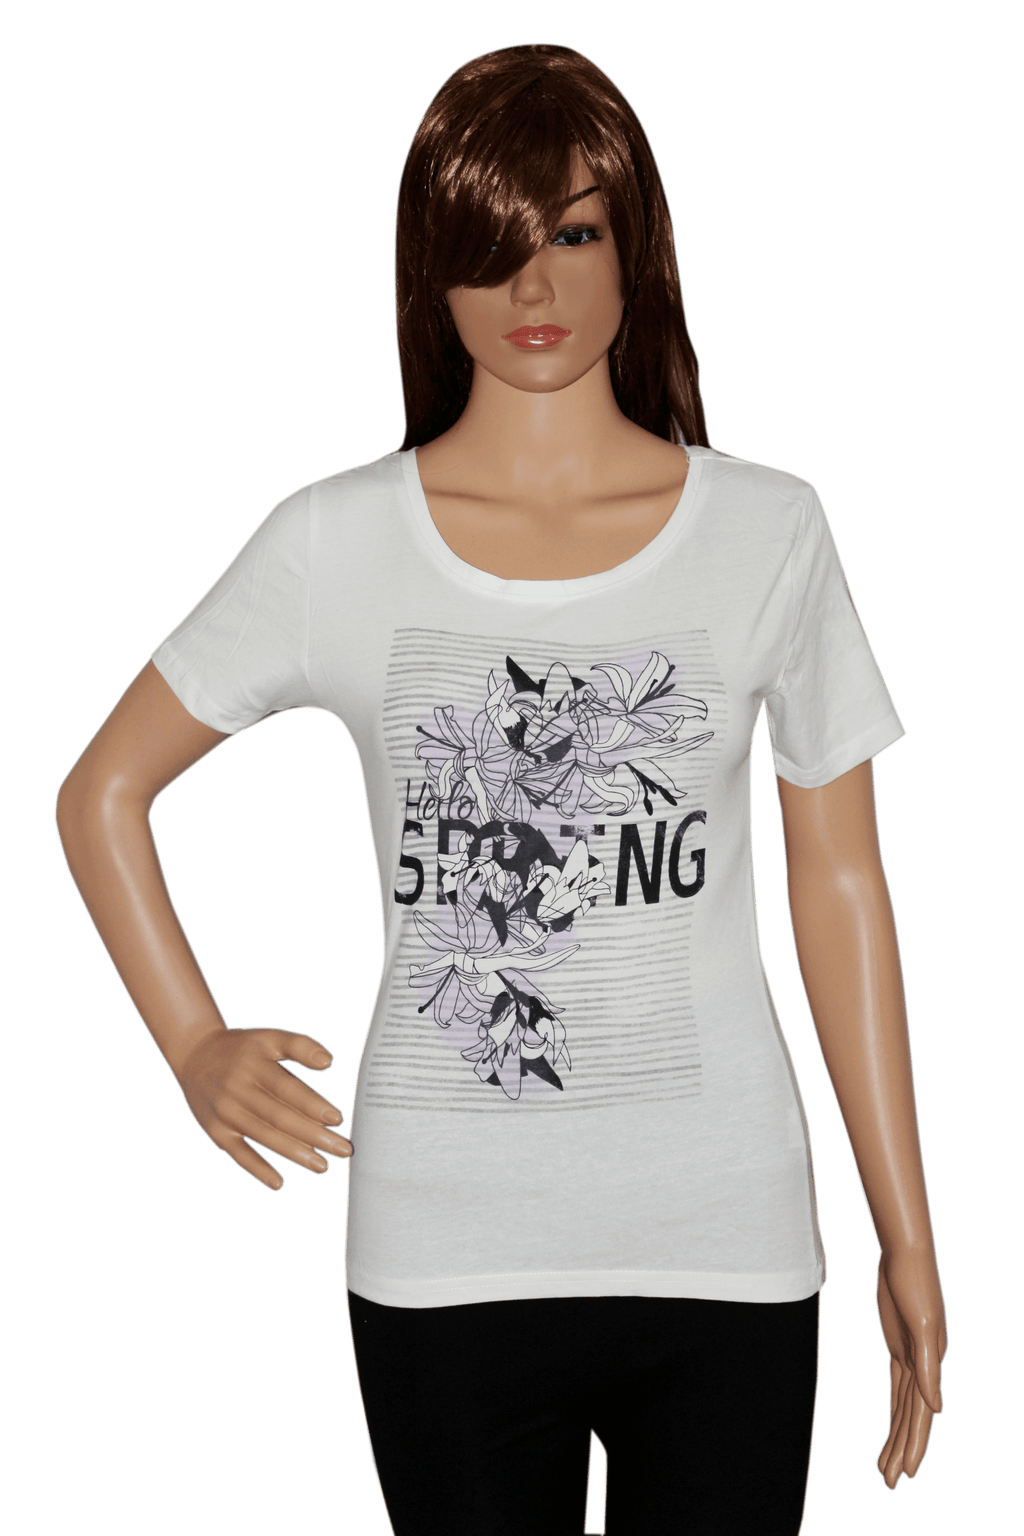 Ladies T-Shirt (LTS-0151)